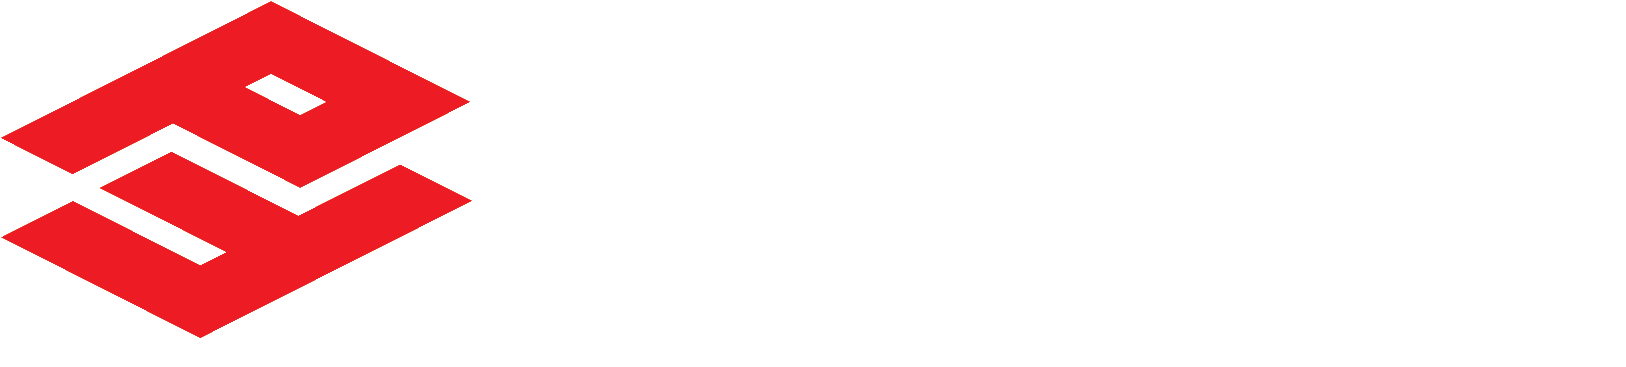 Proform Construction and Proform Homes